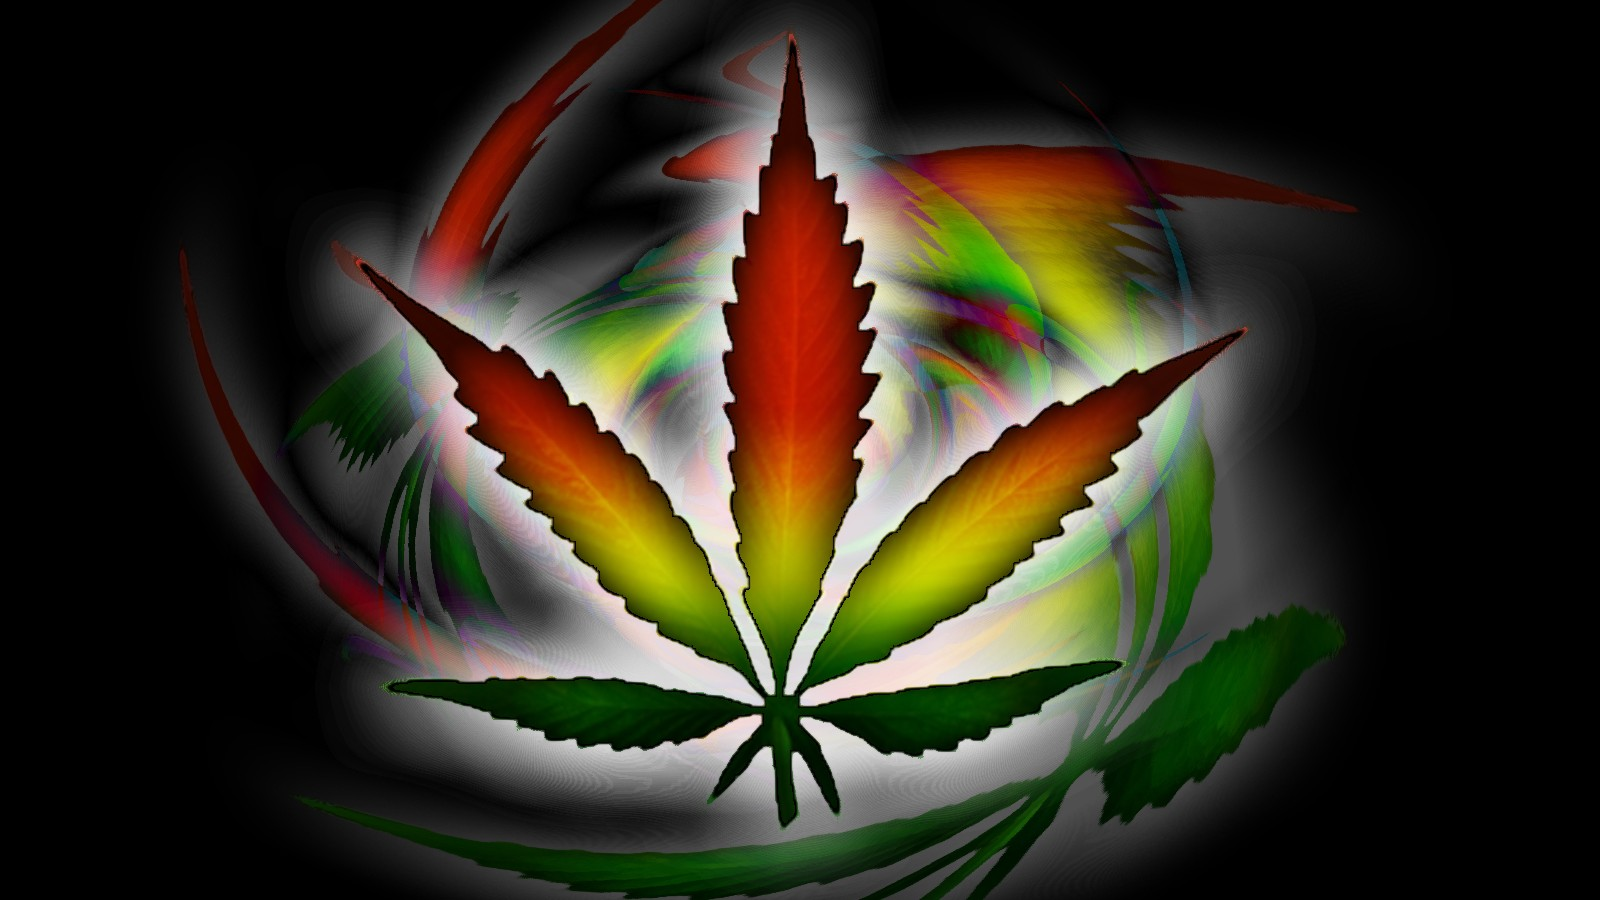 dope tumblr weed wallpapers - photo #46